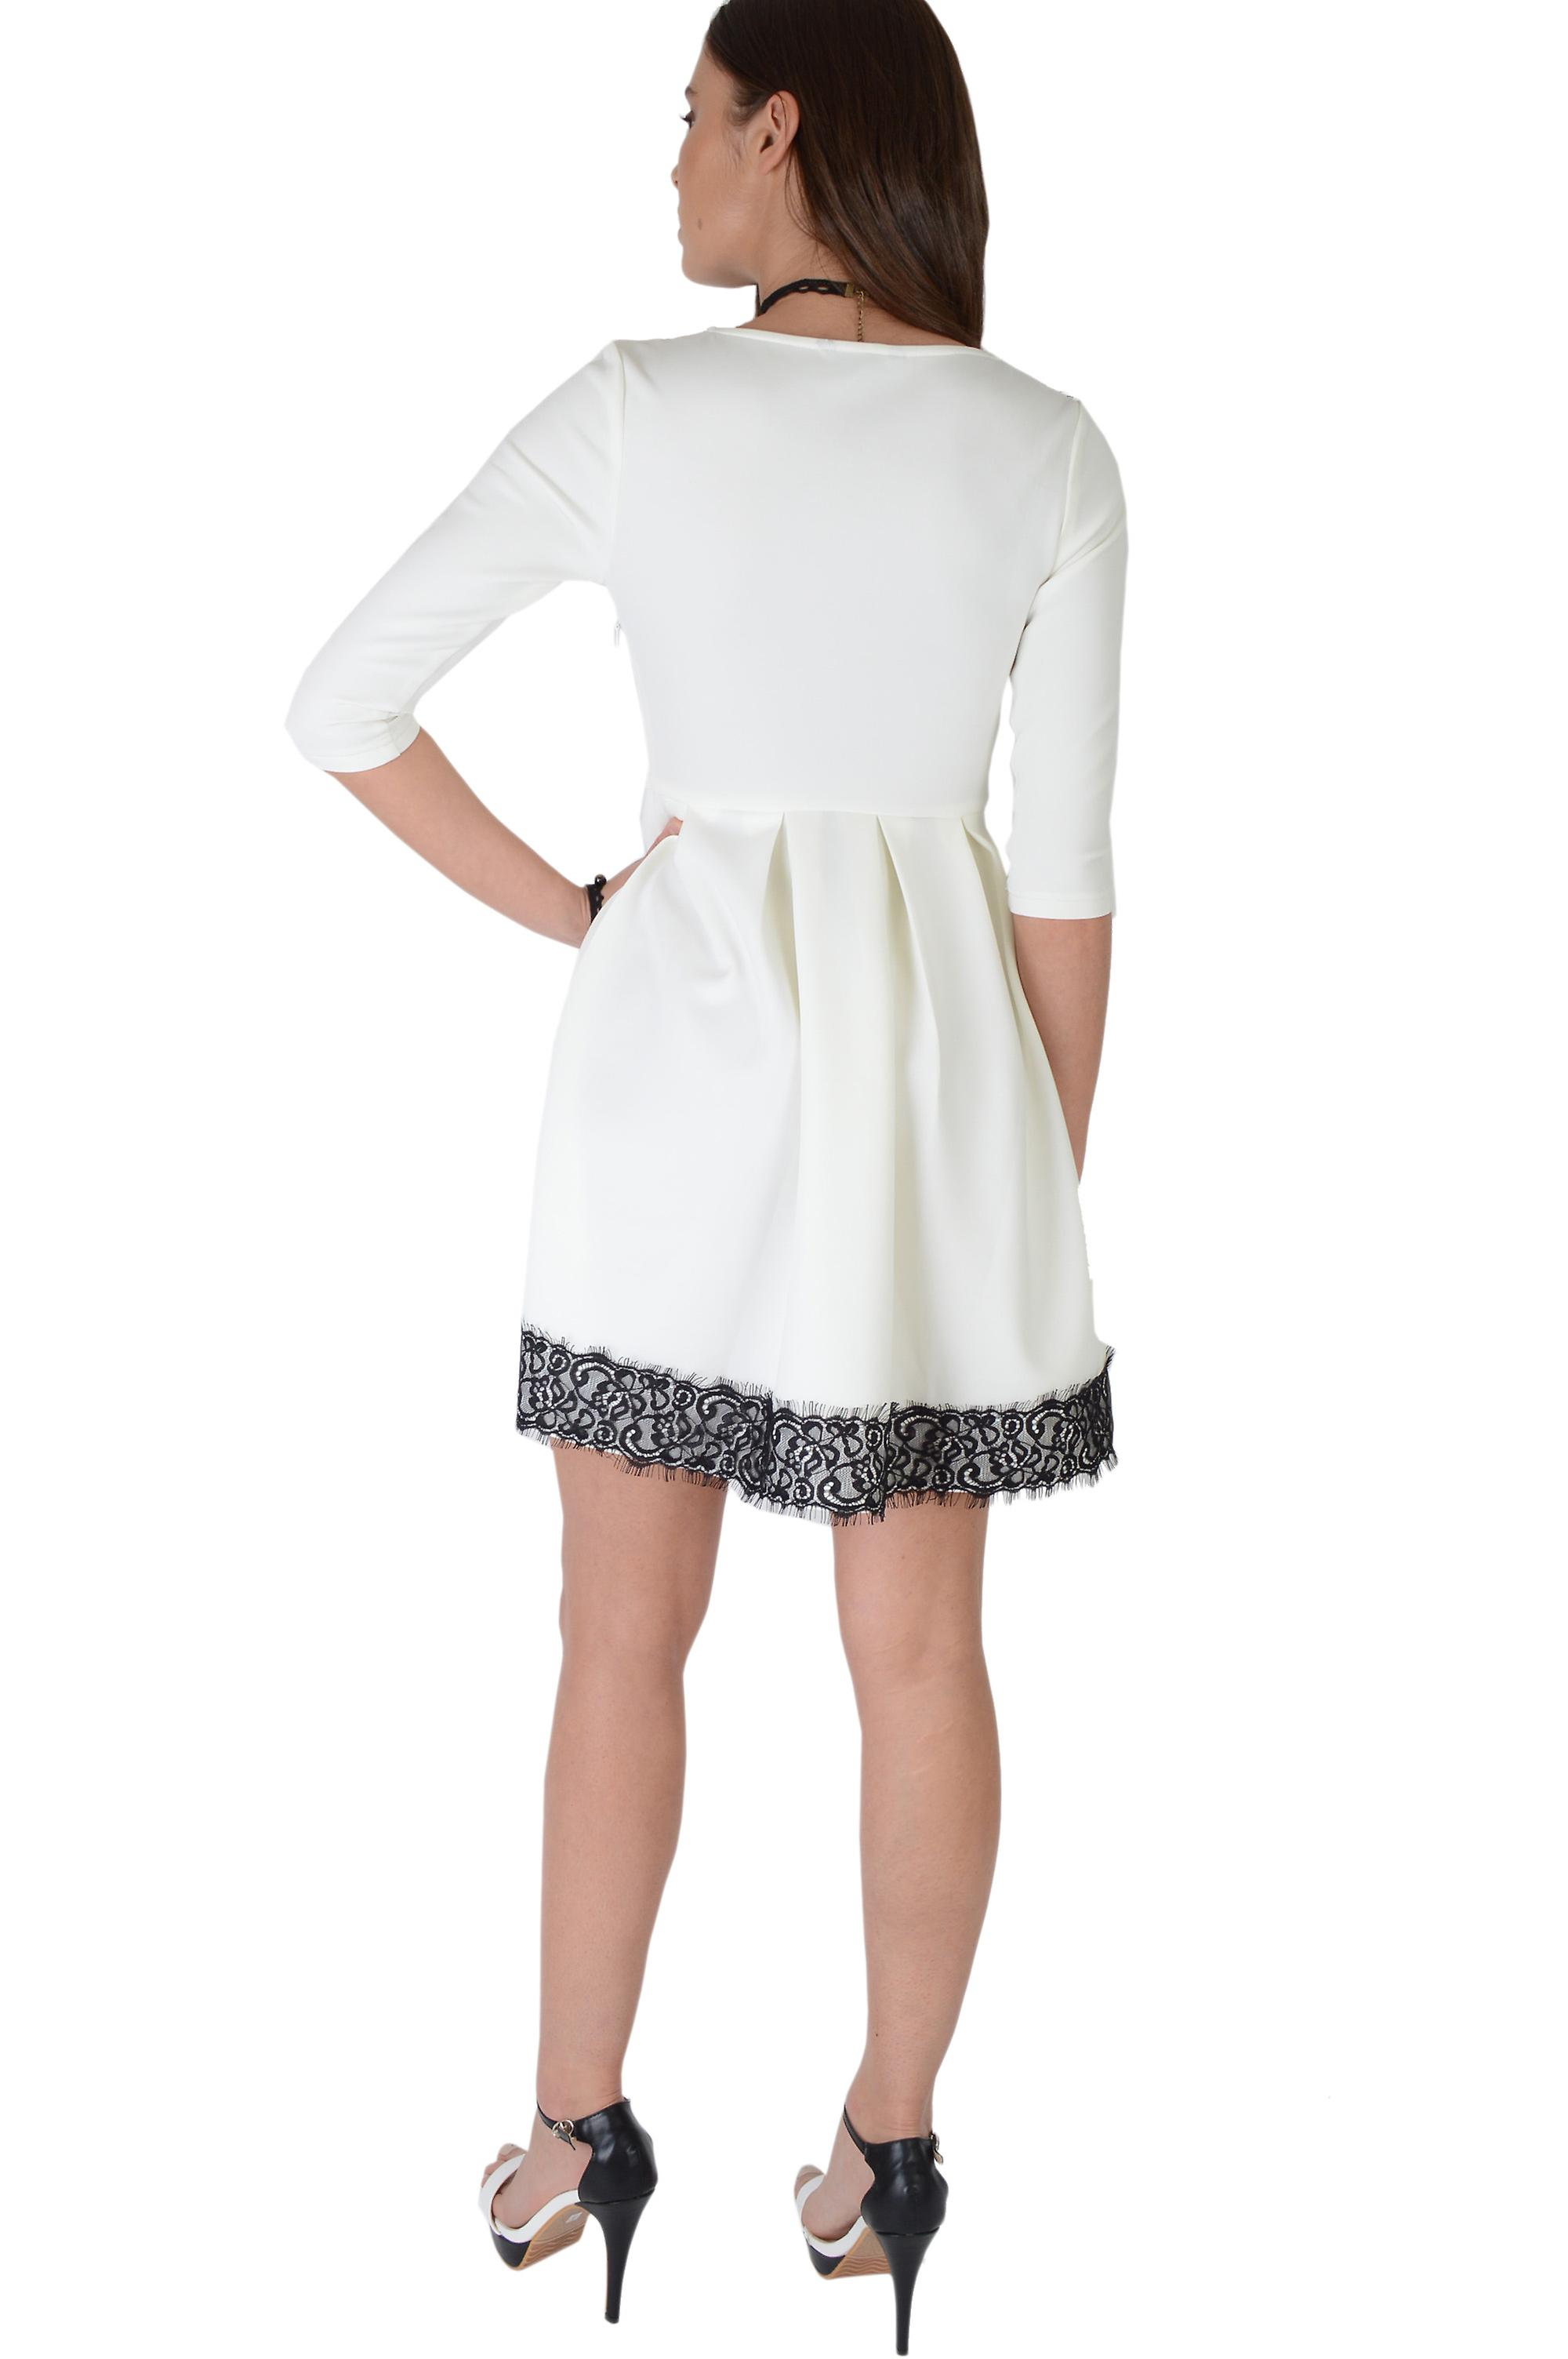 Lovemysyle White Skater Dress With Black Lace V-Neckline